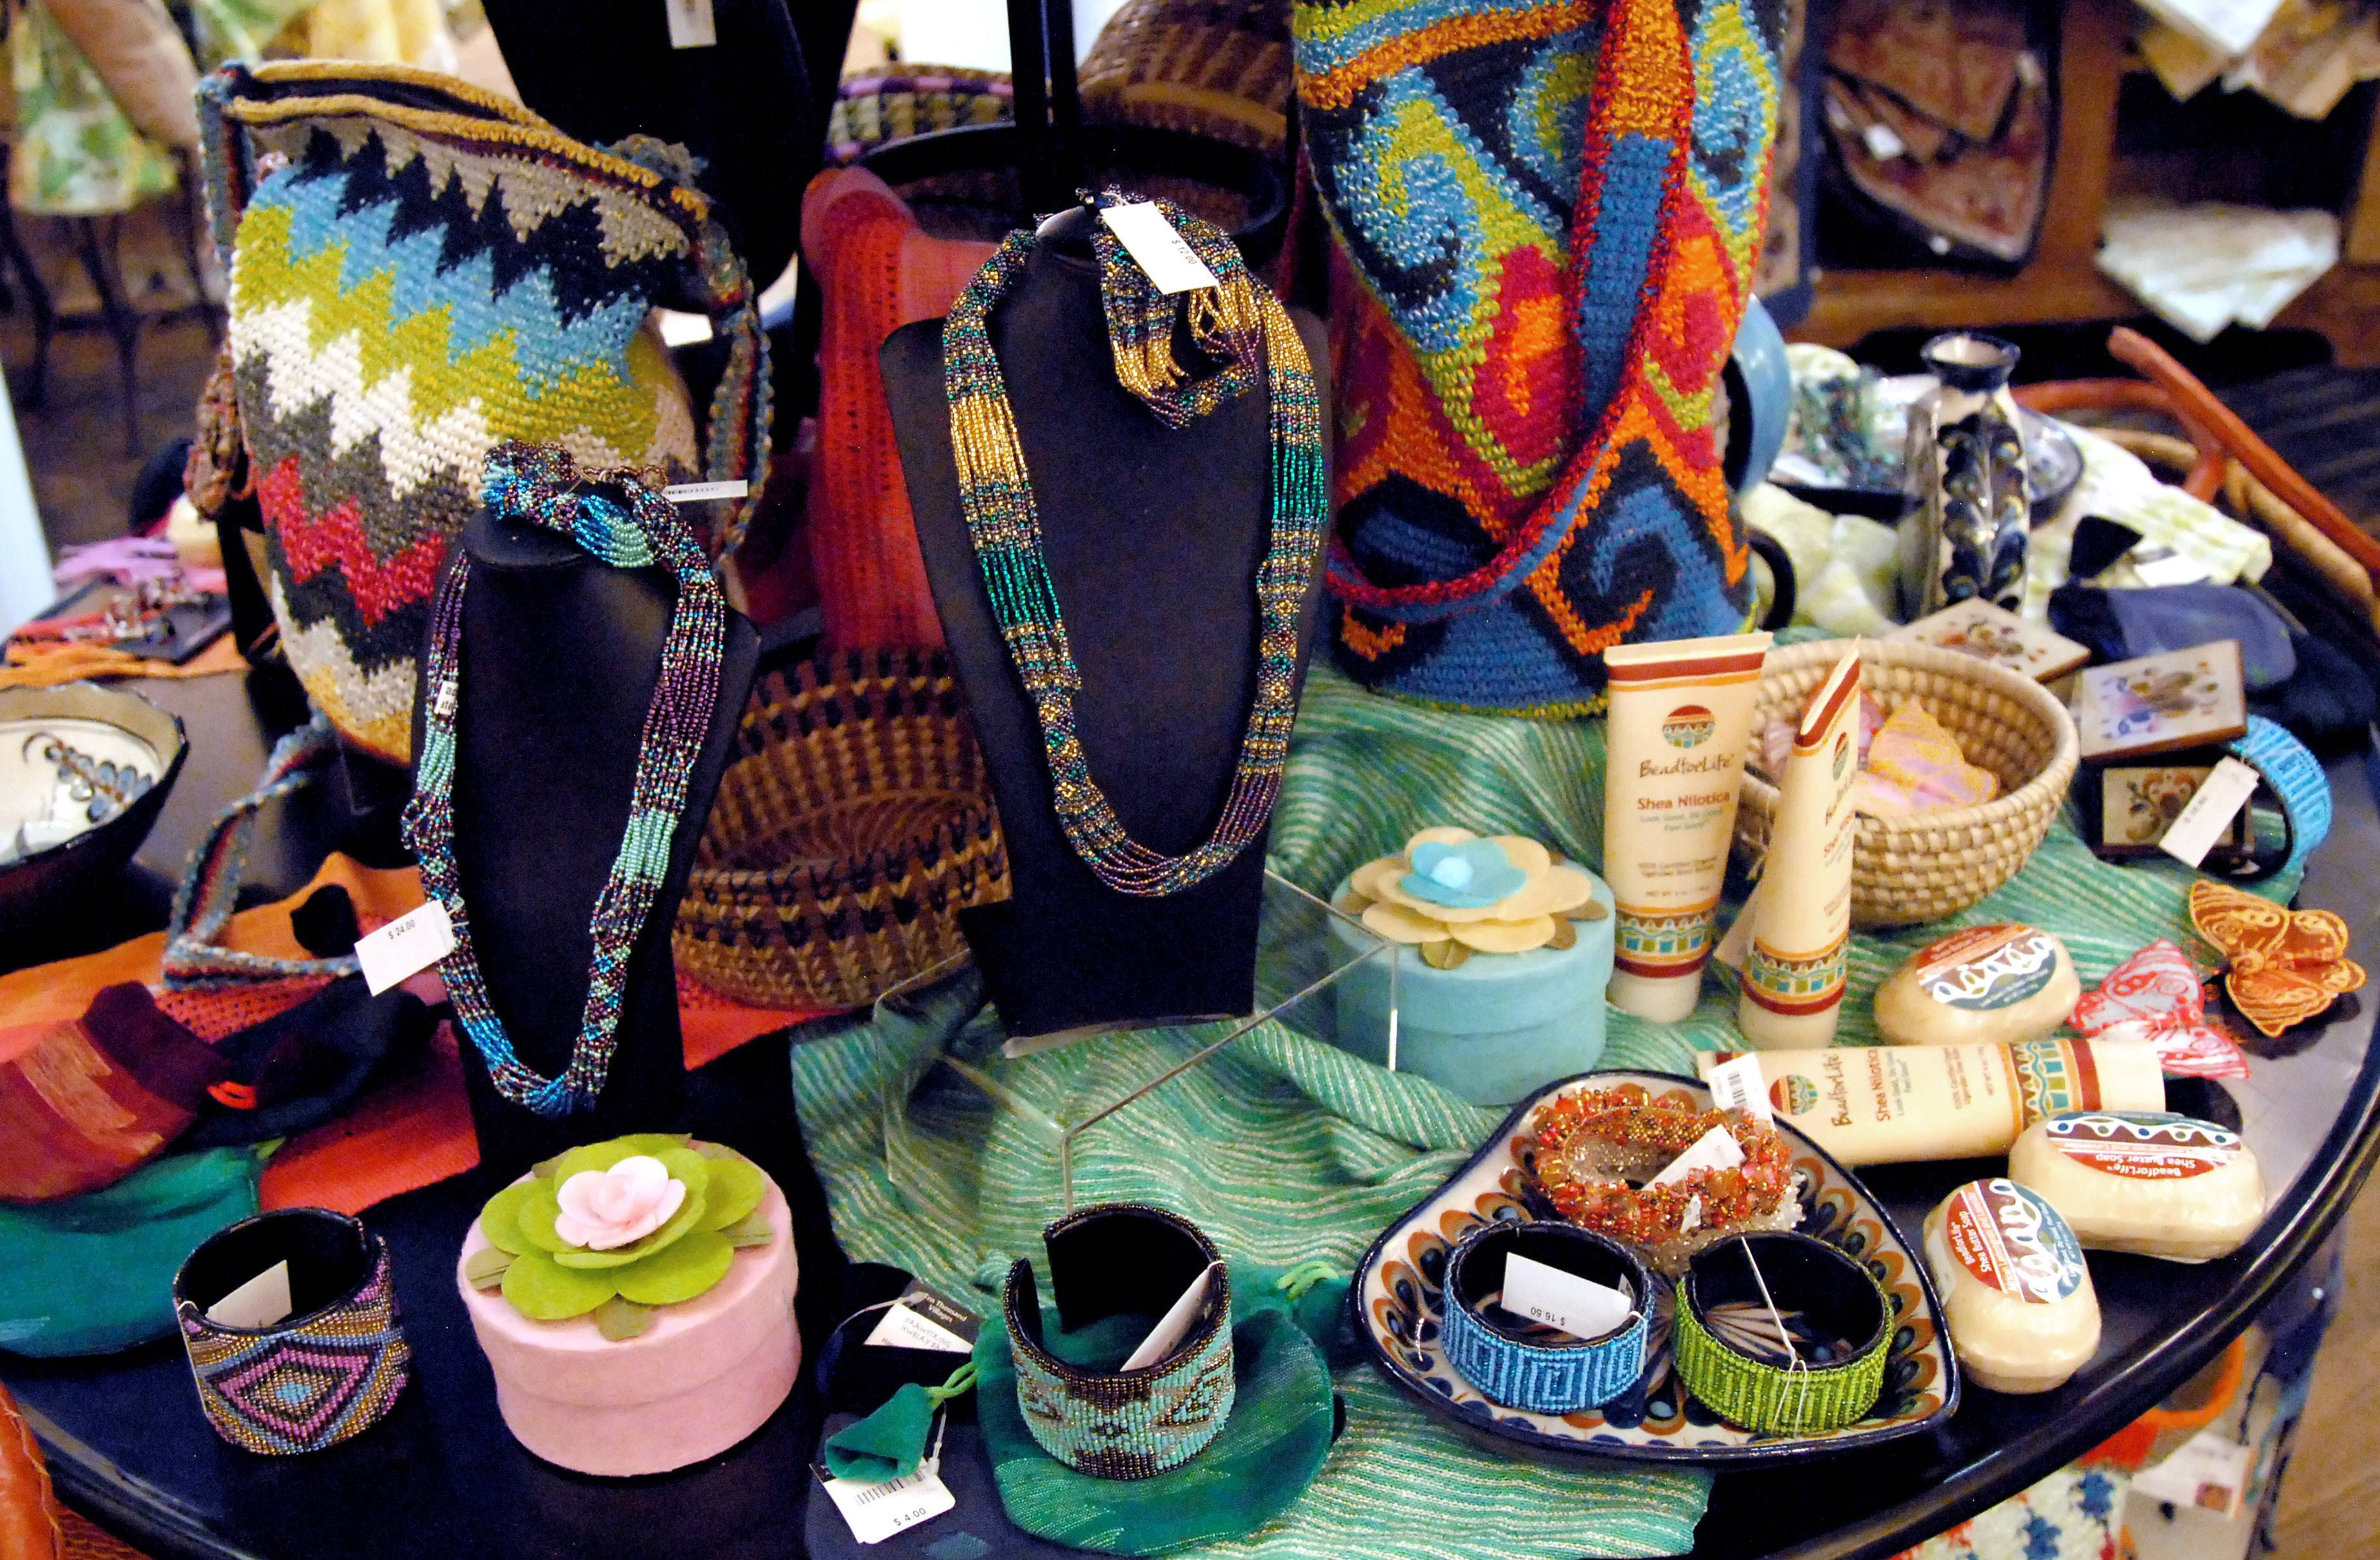 The Little Traveler in Geneva has added a Fair Trade Gallery to its many departments. Items include jewelry, bags, soaps, home decor and more, made by people in developing countries who are paid fair prices for their work and encouraged to use ecologically sustainable practices.